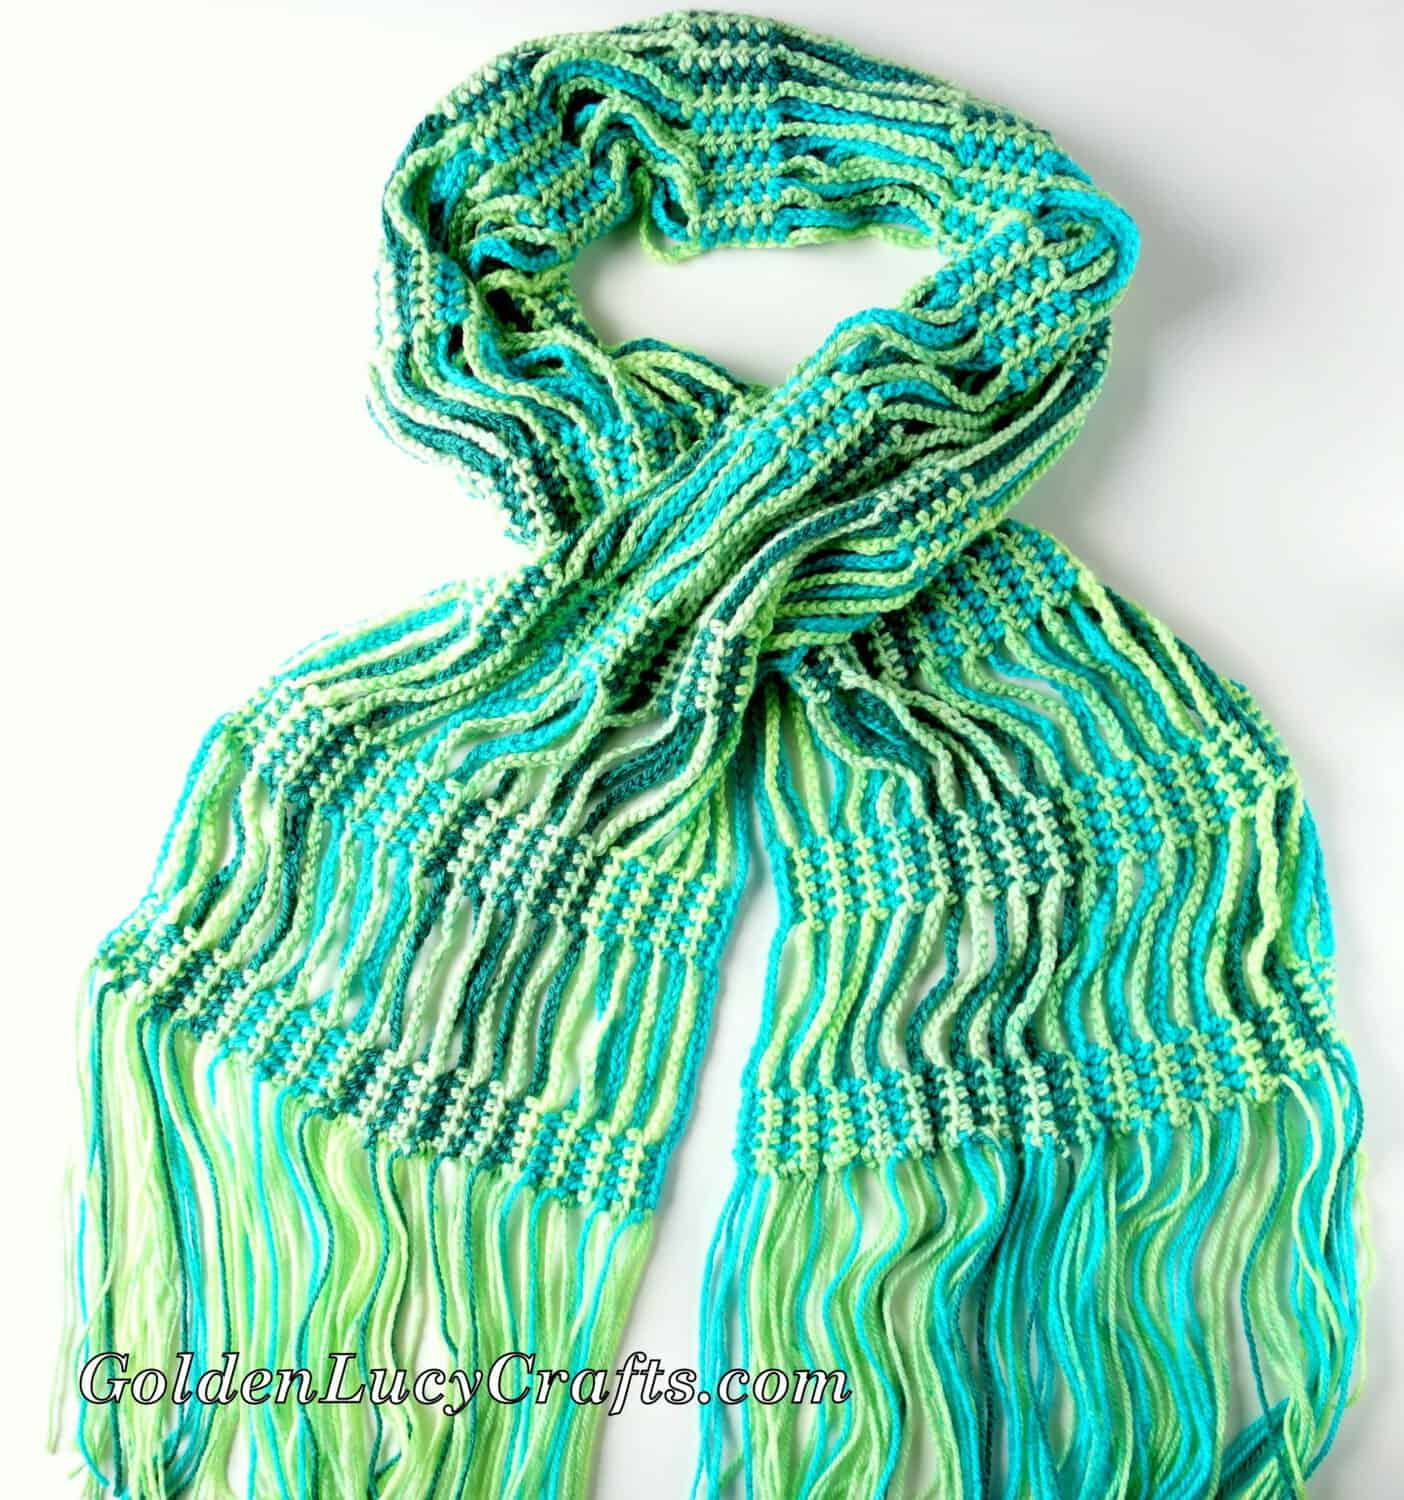 Crochet Scarf Made with Caron Cakes Yarn